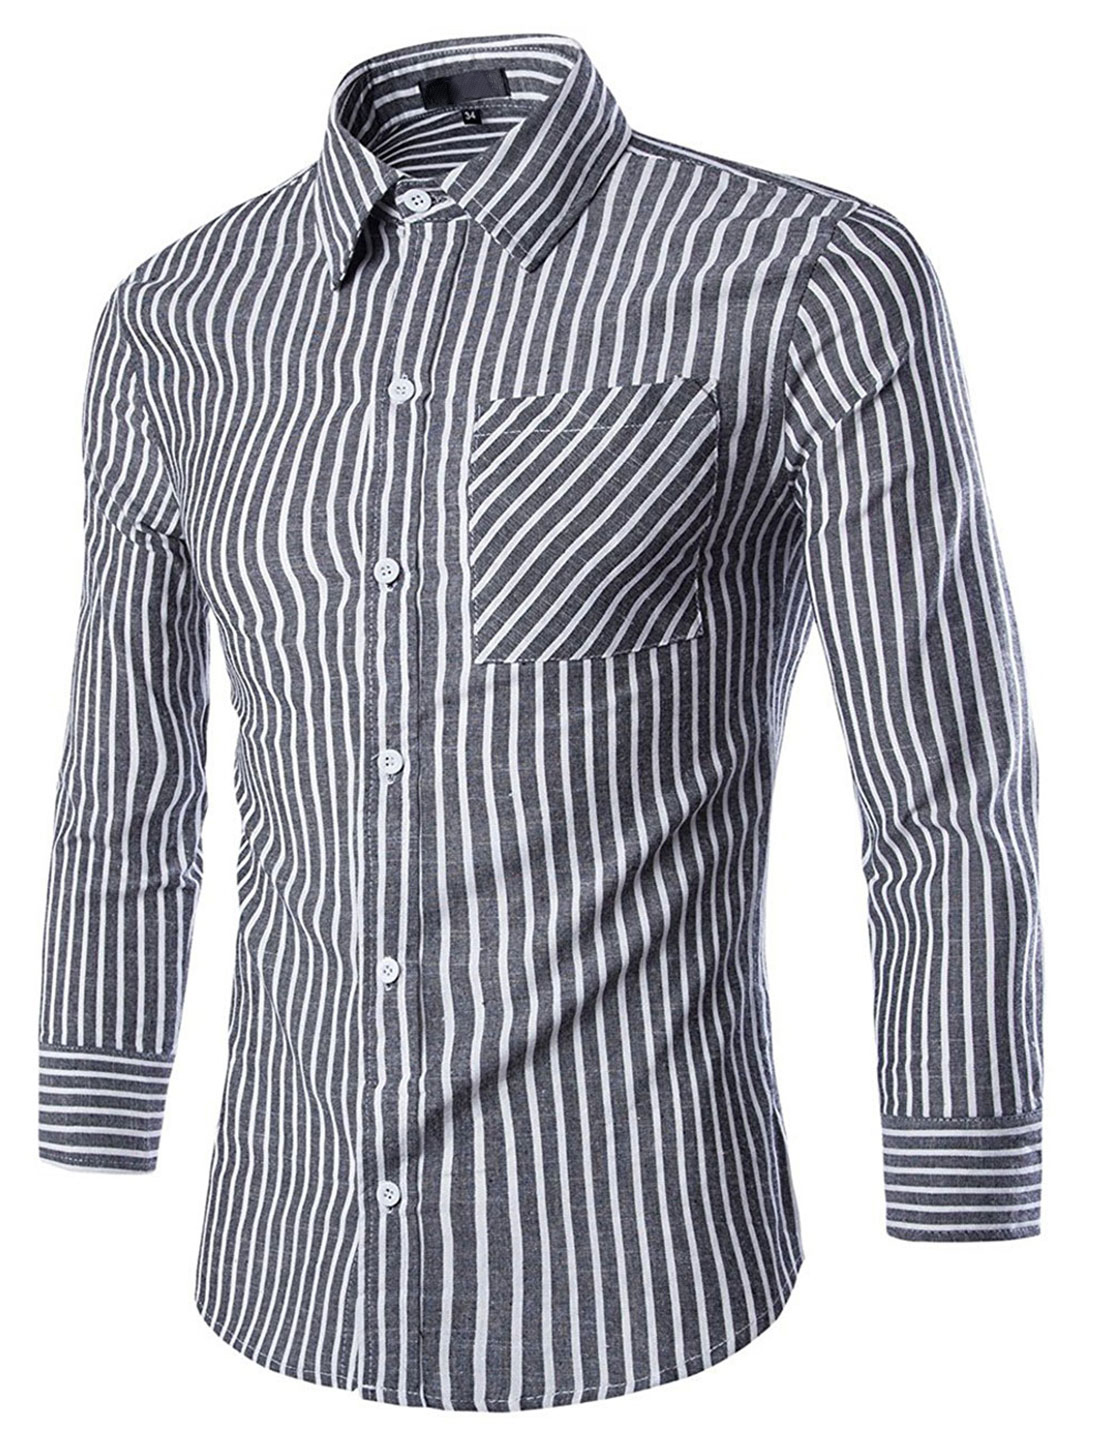 Men Patch Pocket Long-sleeved Striped Casual Shirts Gray White M